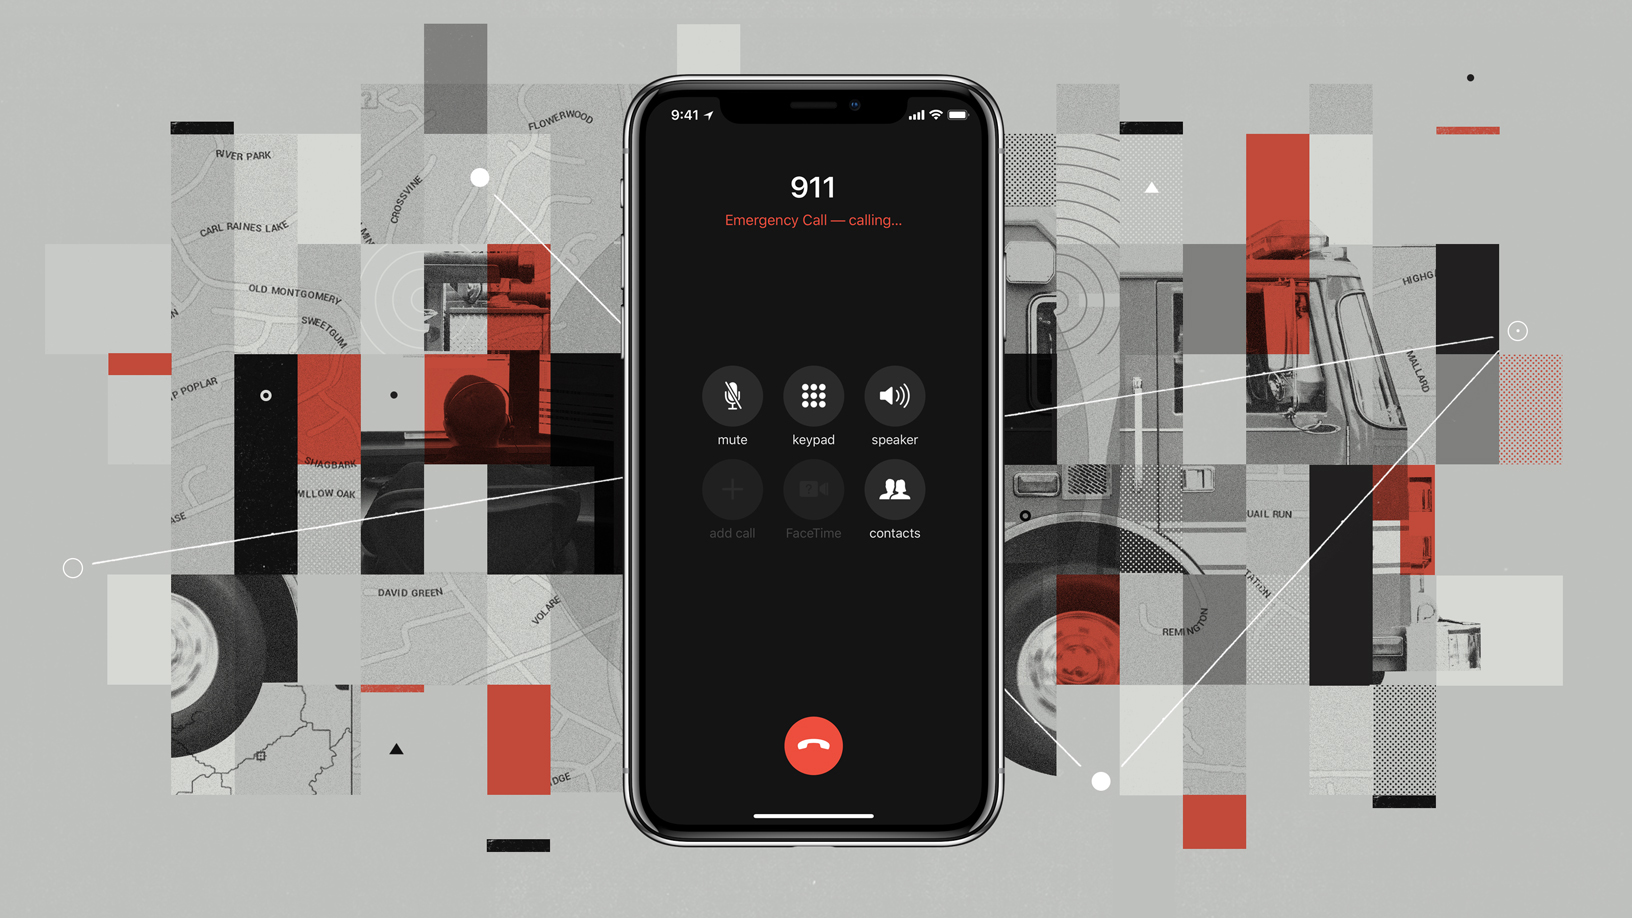 IOS 12 Will Automatically Share Your Location With 911 Responders